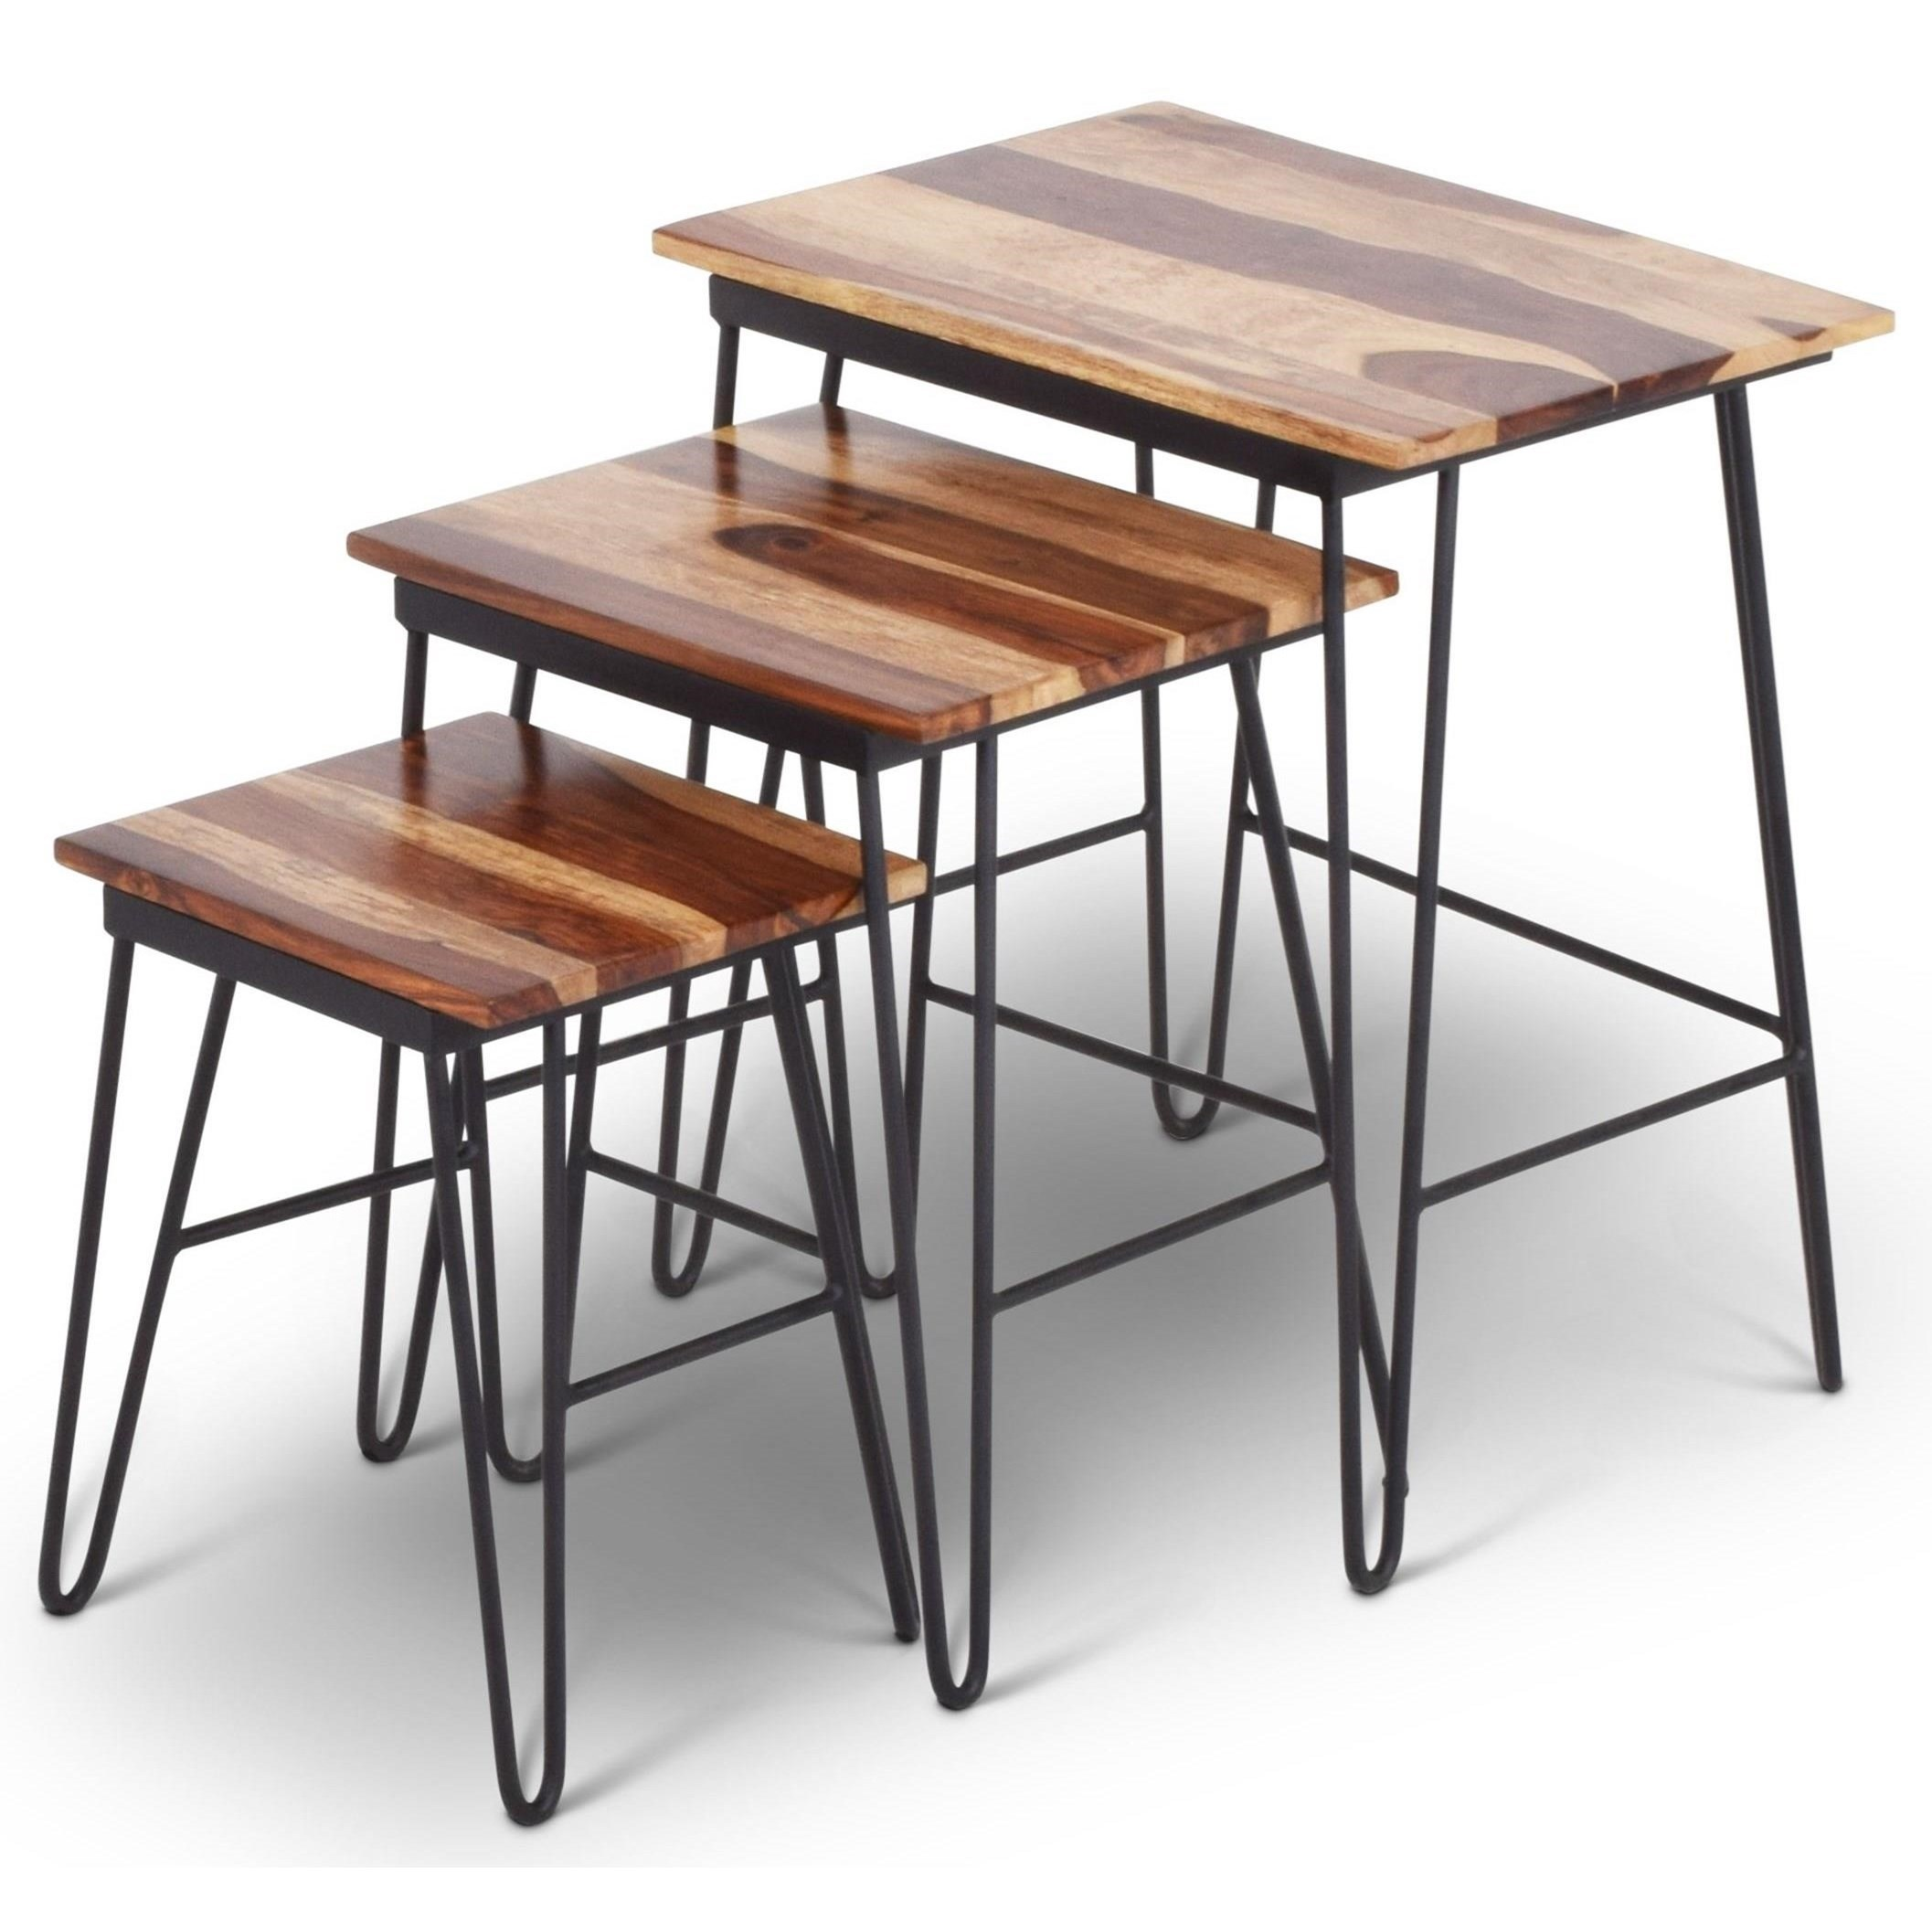 India Accents Tristan Nesting Tables by Steve Silver at Walker's Furniture